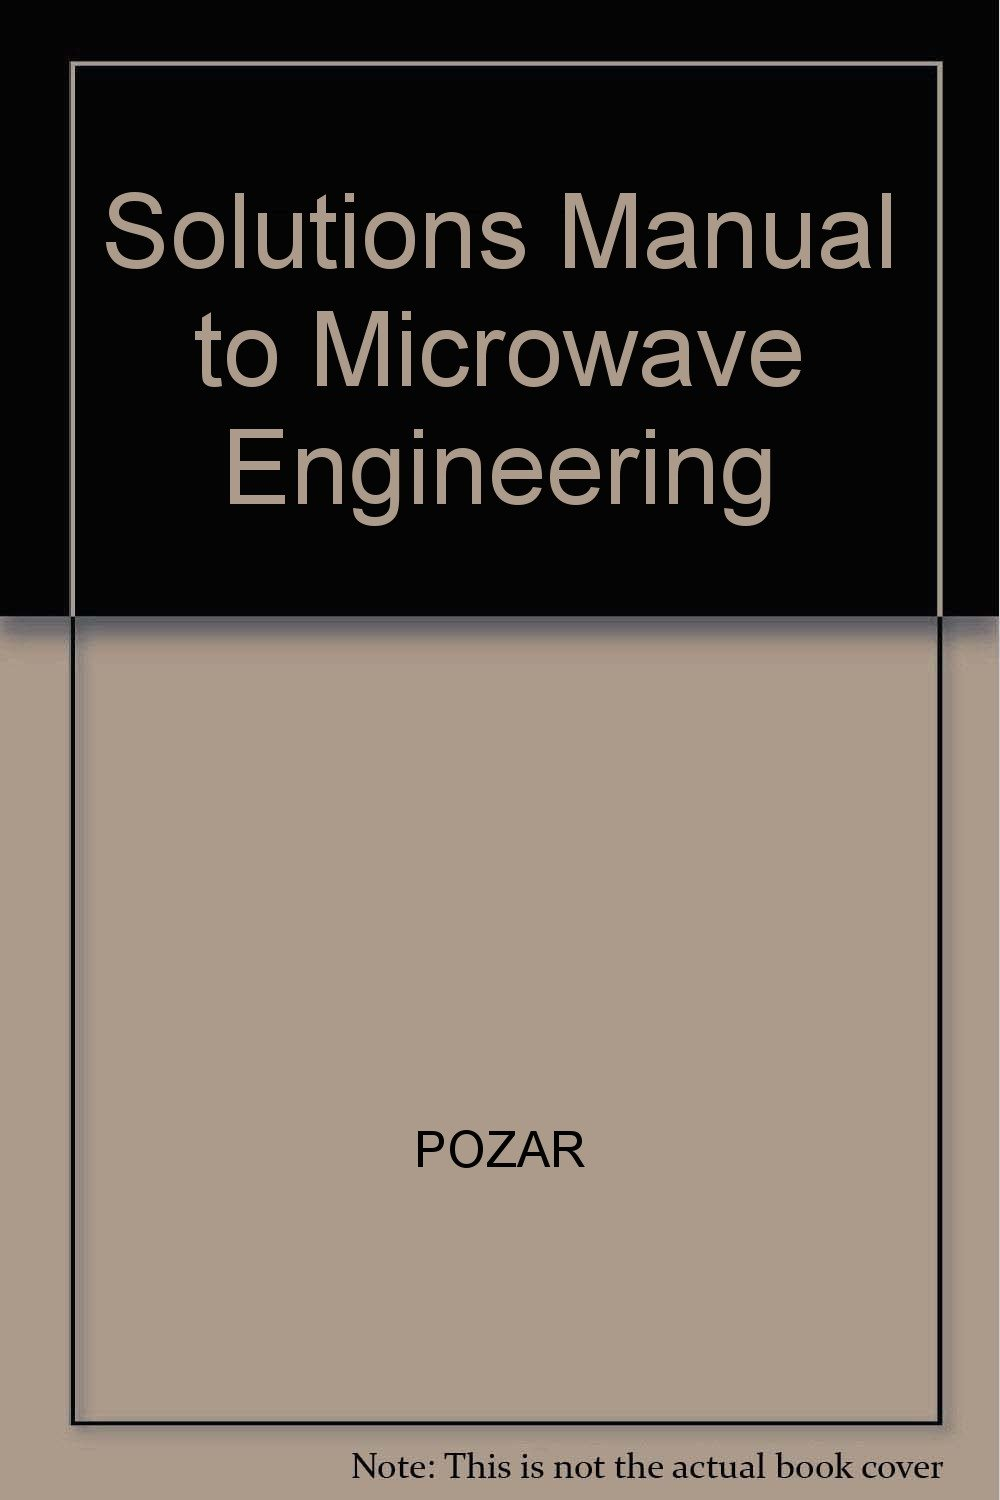 Solutions Manual To Microwave Engineering Pozar 9780201504194 Amazon Com Books